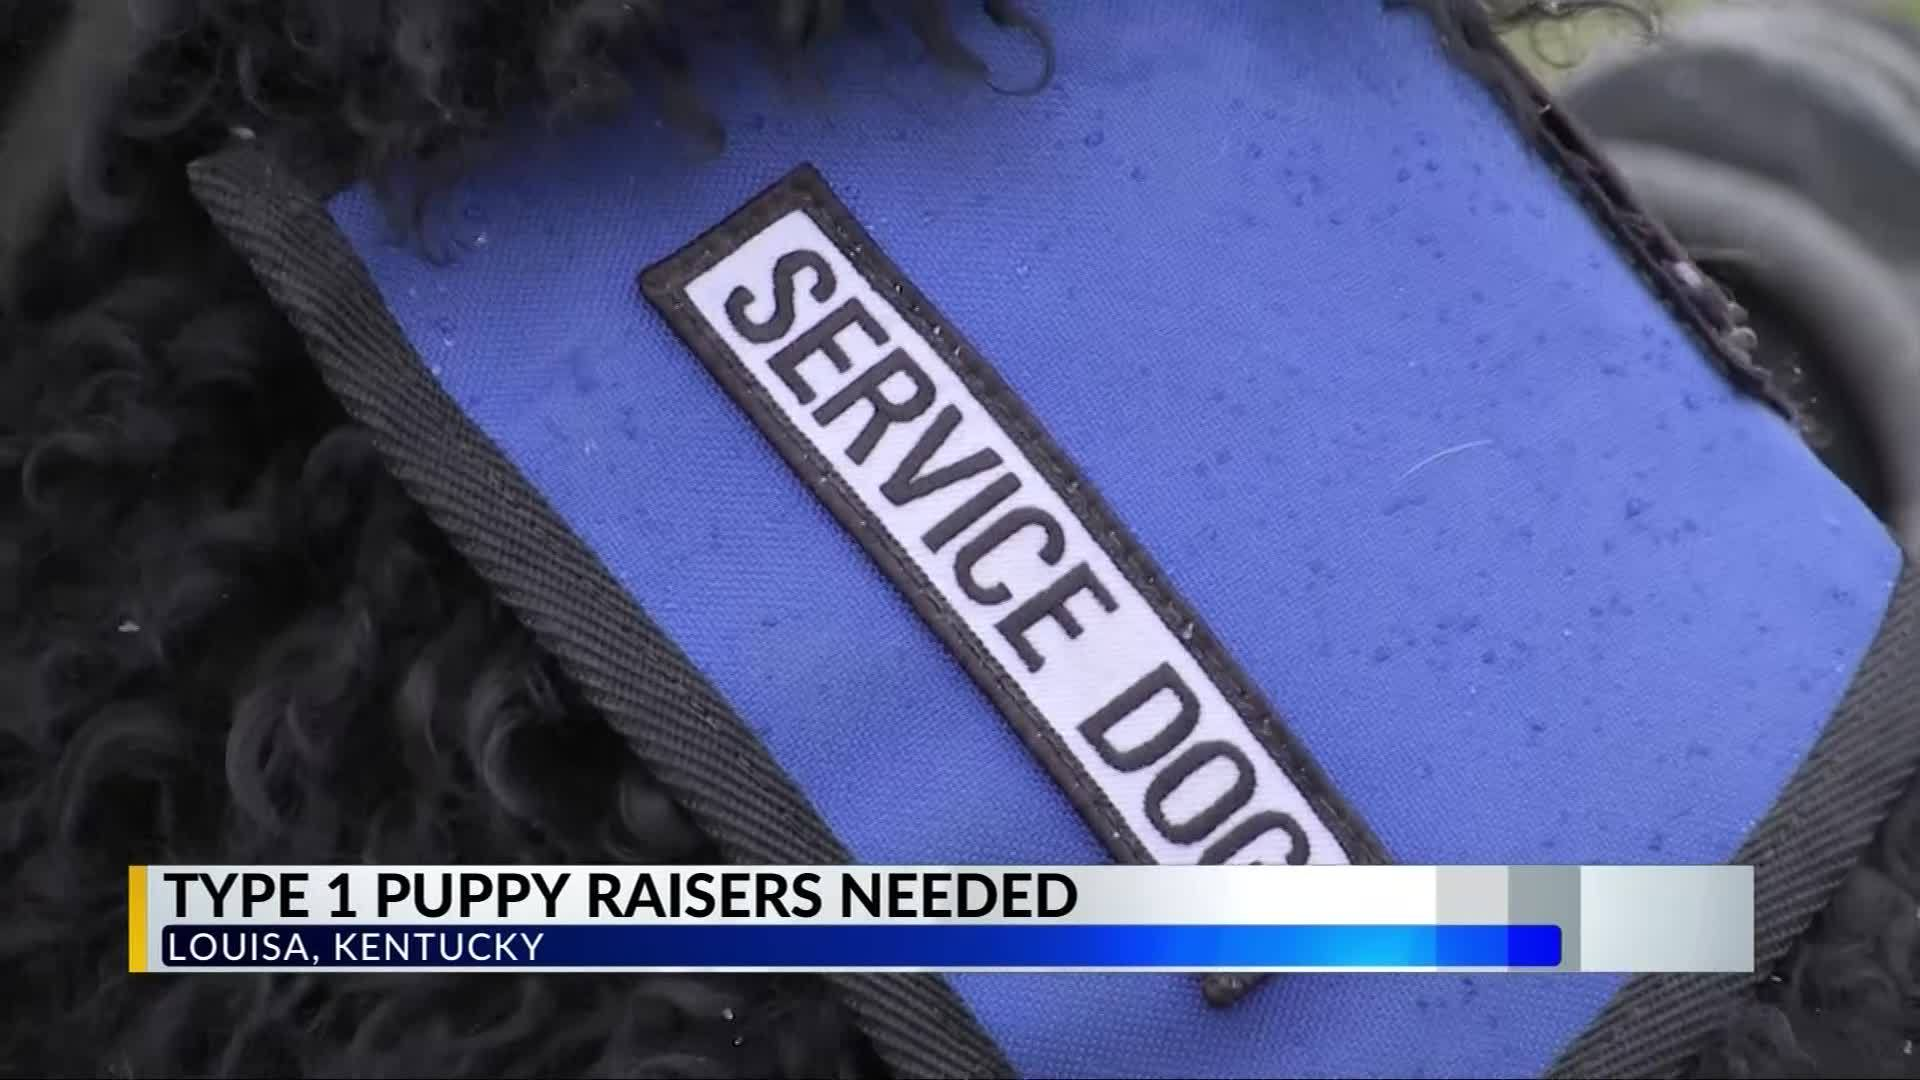 Type 1 diabetic service dogs in need of puppy raisers